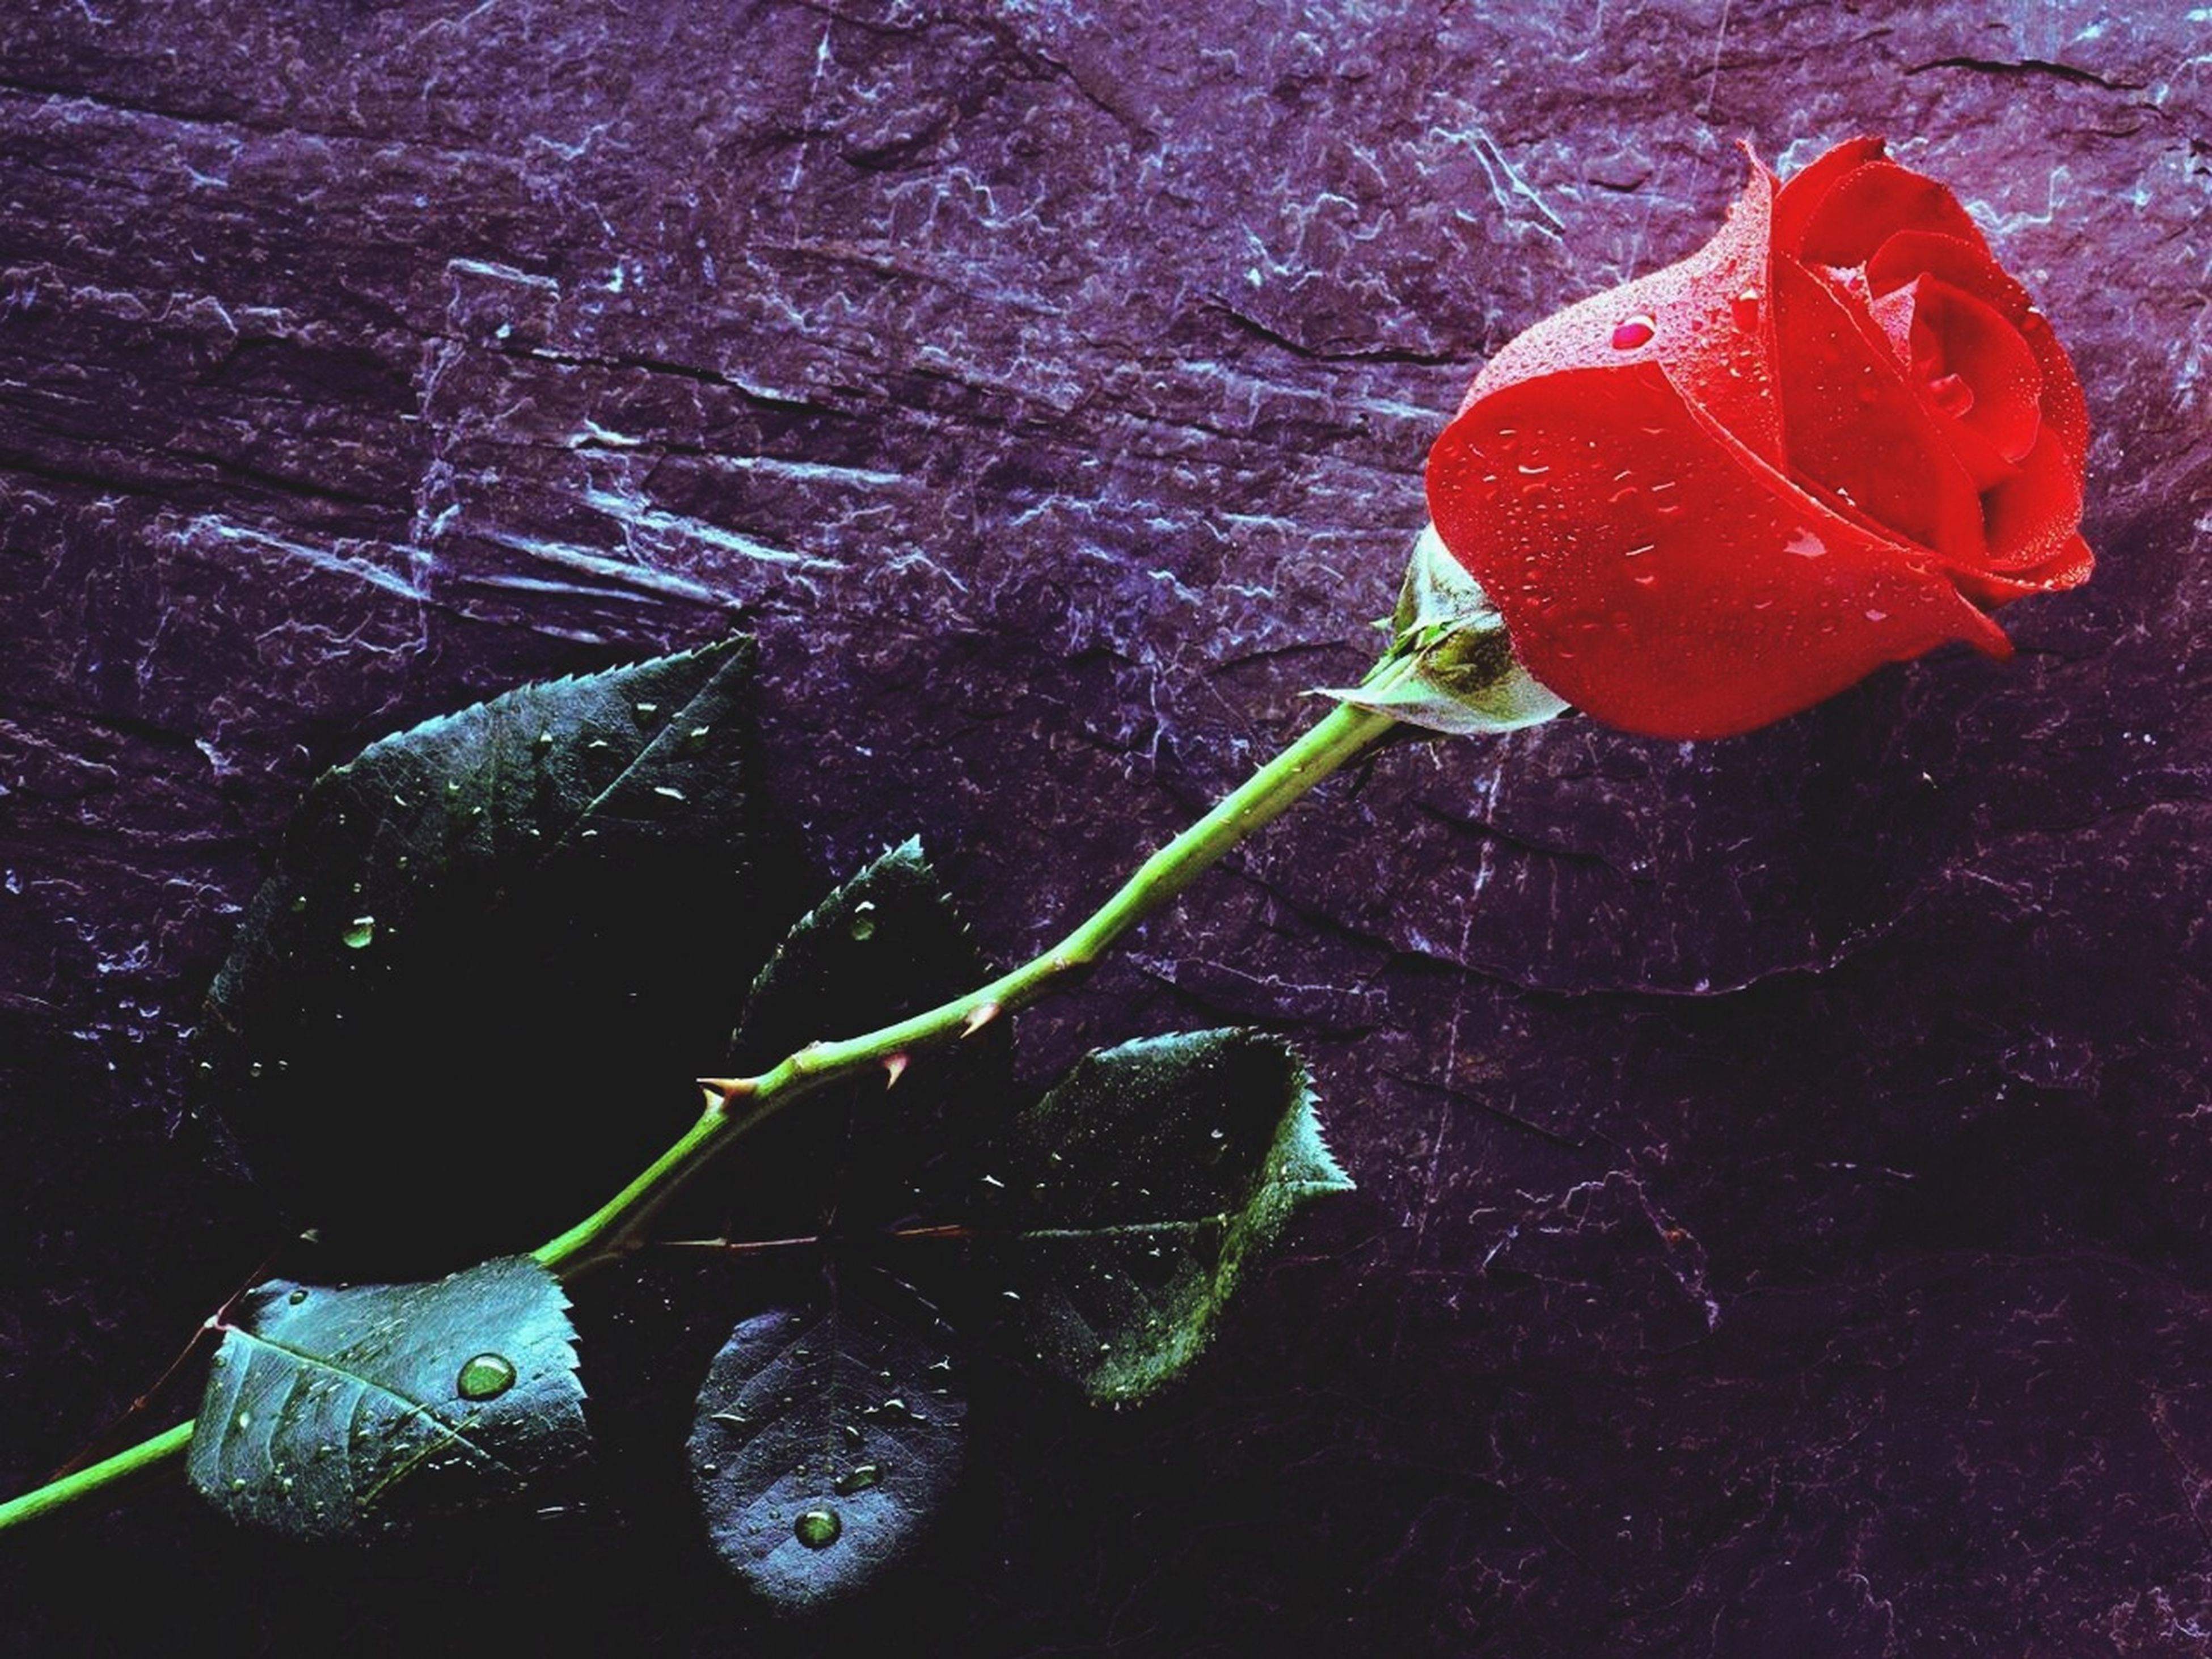 flower, fragility, freshness, water, drop, petal, close-up, wet, beauty in nature, flower head, growth, plant, nature, leaf, stem, red, rose - flower, single flower, high angle view, dew